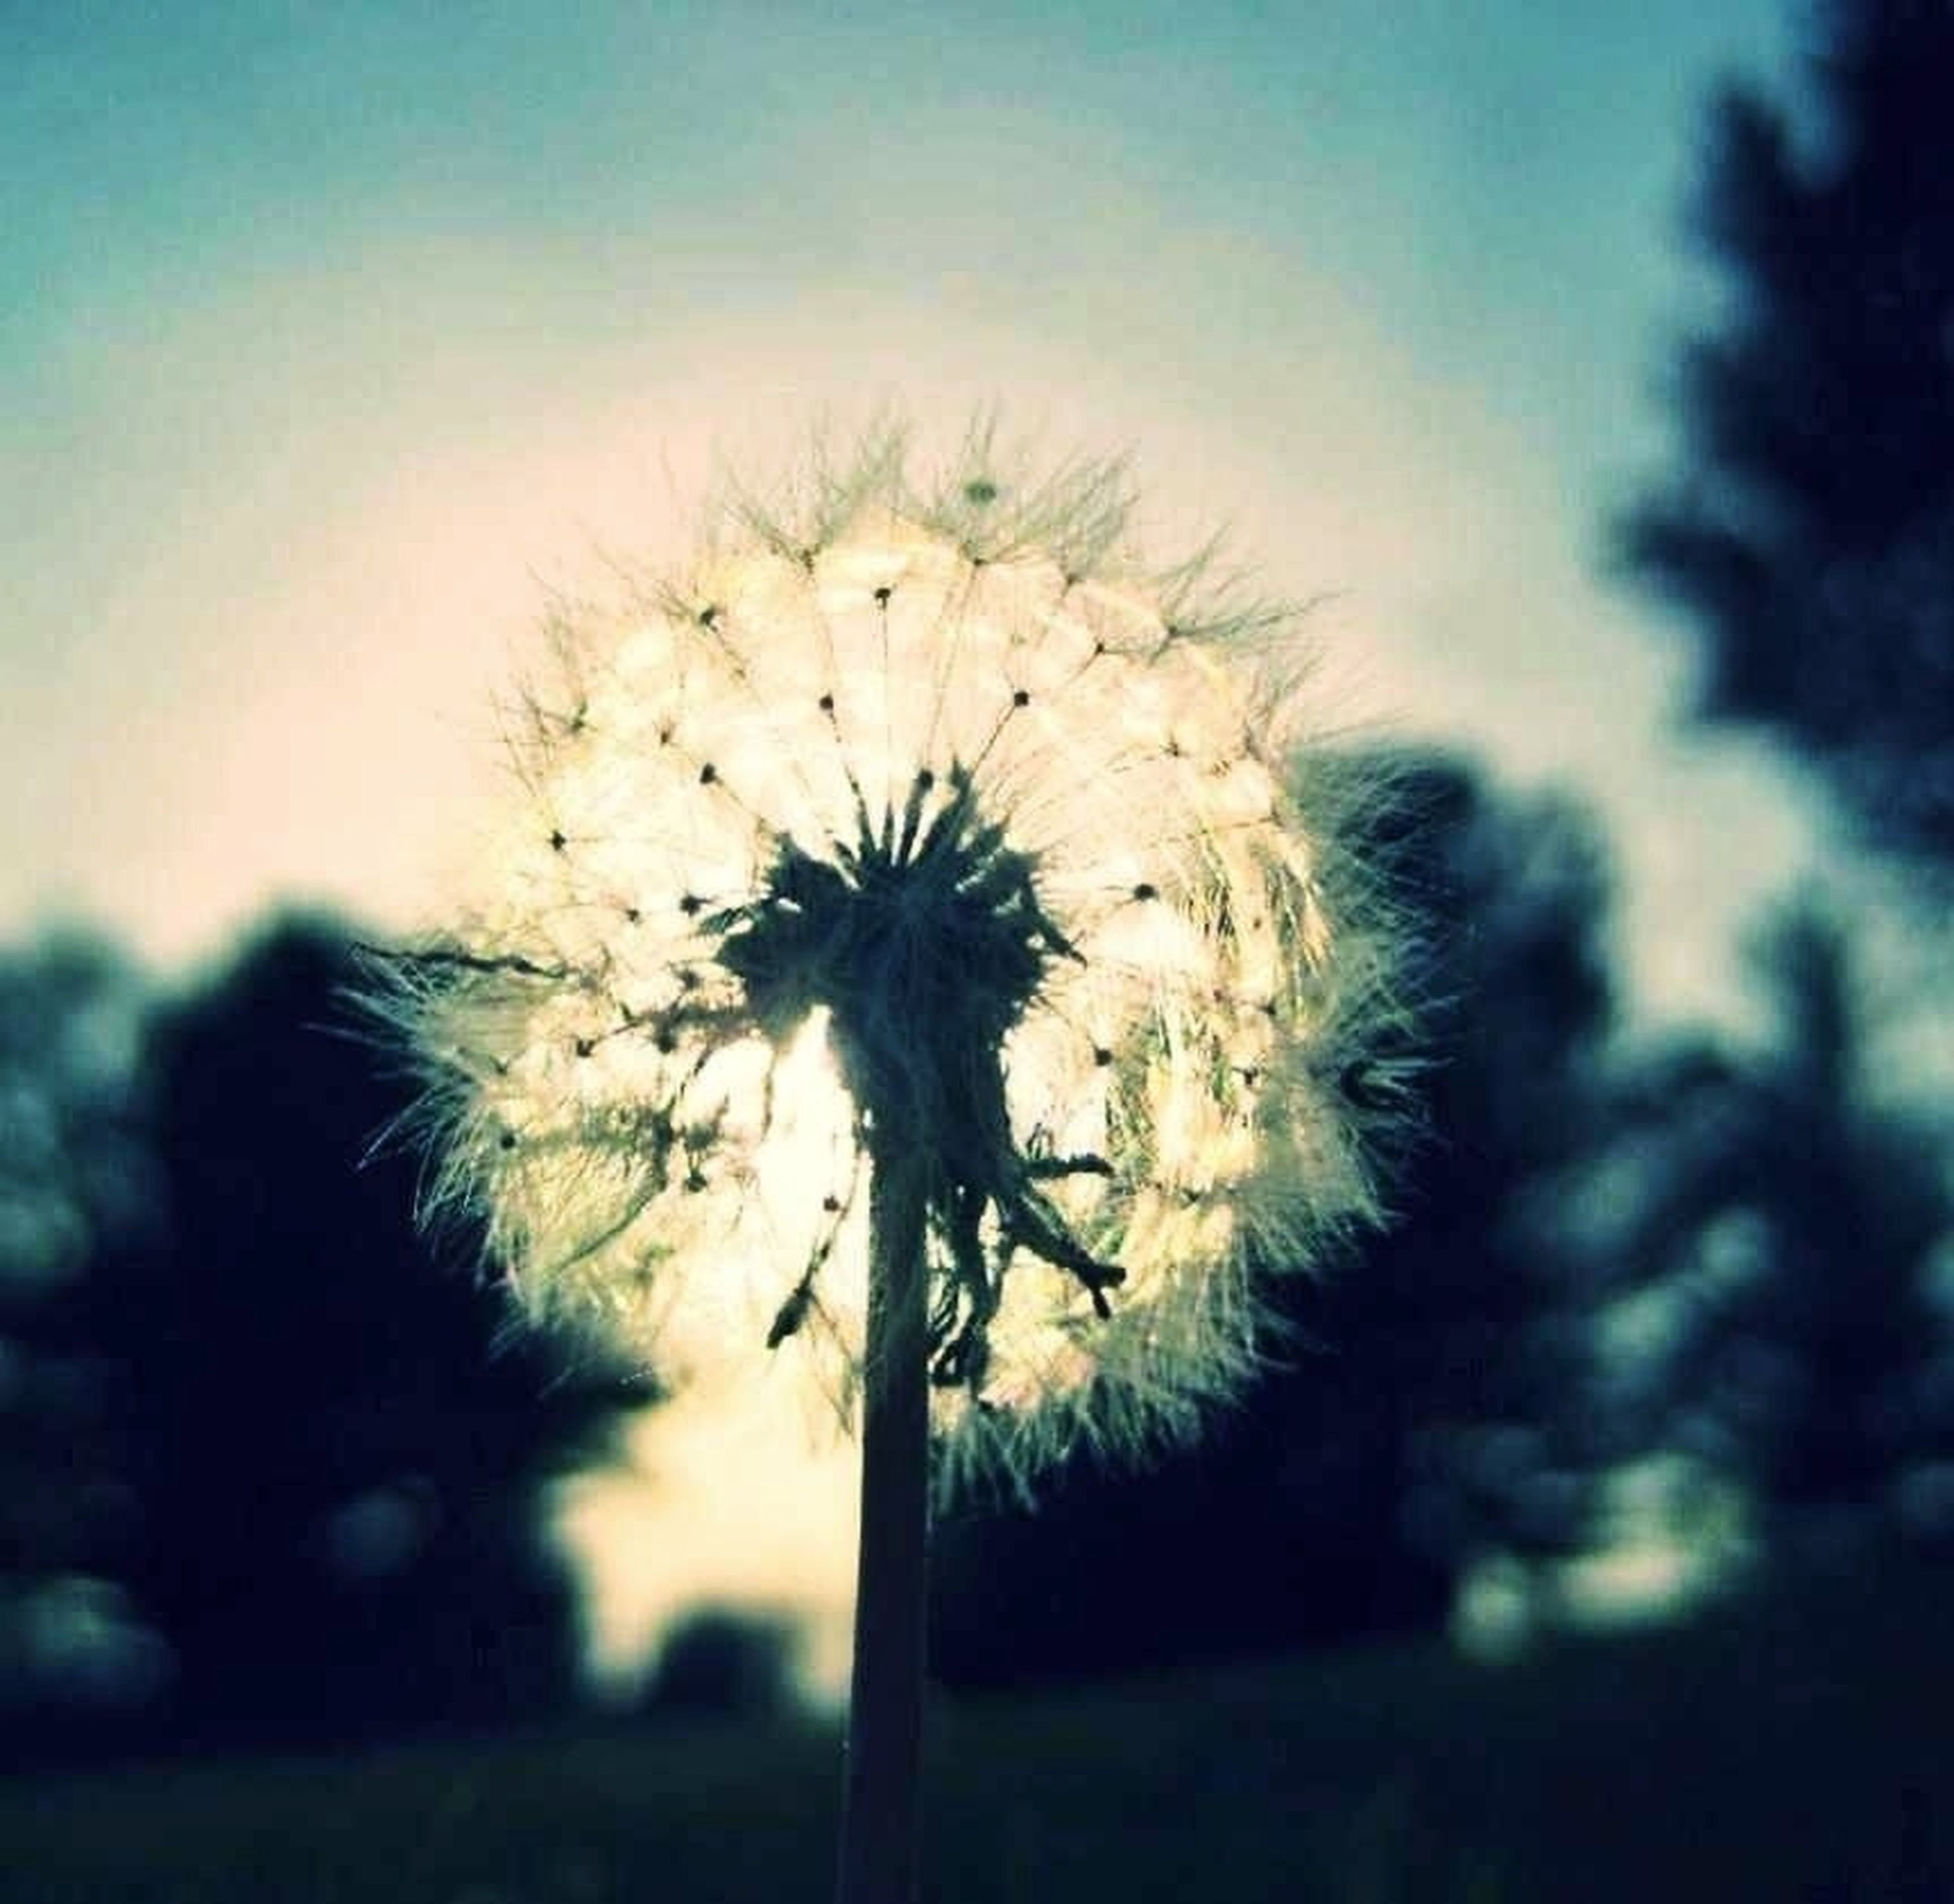 flower, dandelion, growth, fragility, freshness, flower head, focus on foreground, nature, beauty in nature, close-up, stem, plant, sky, single flower, wildflower, softness, selective focus, uncultivated, field, outdoors